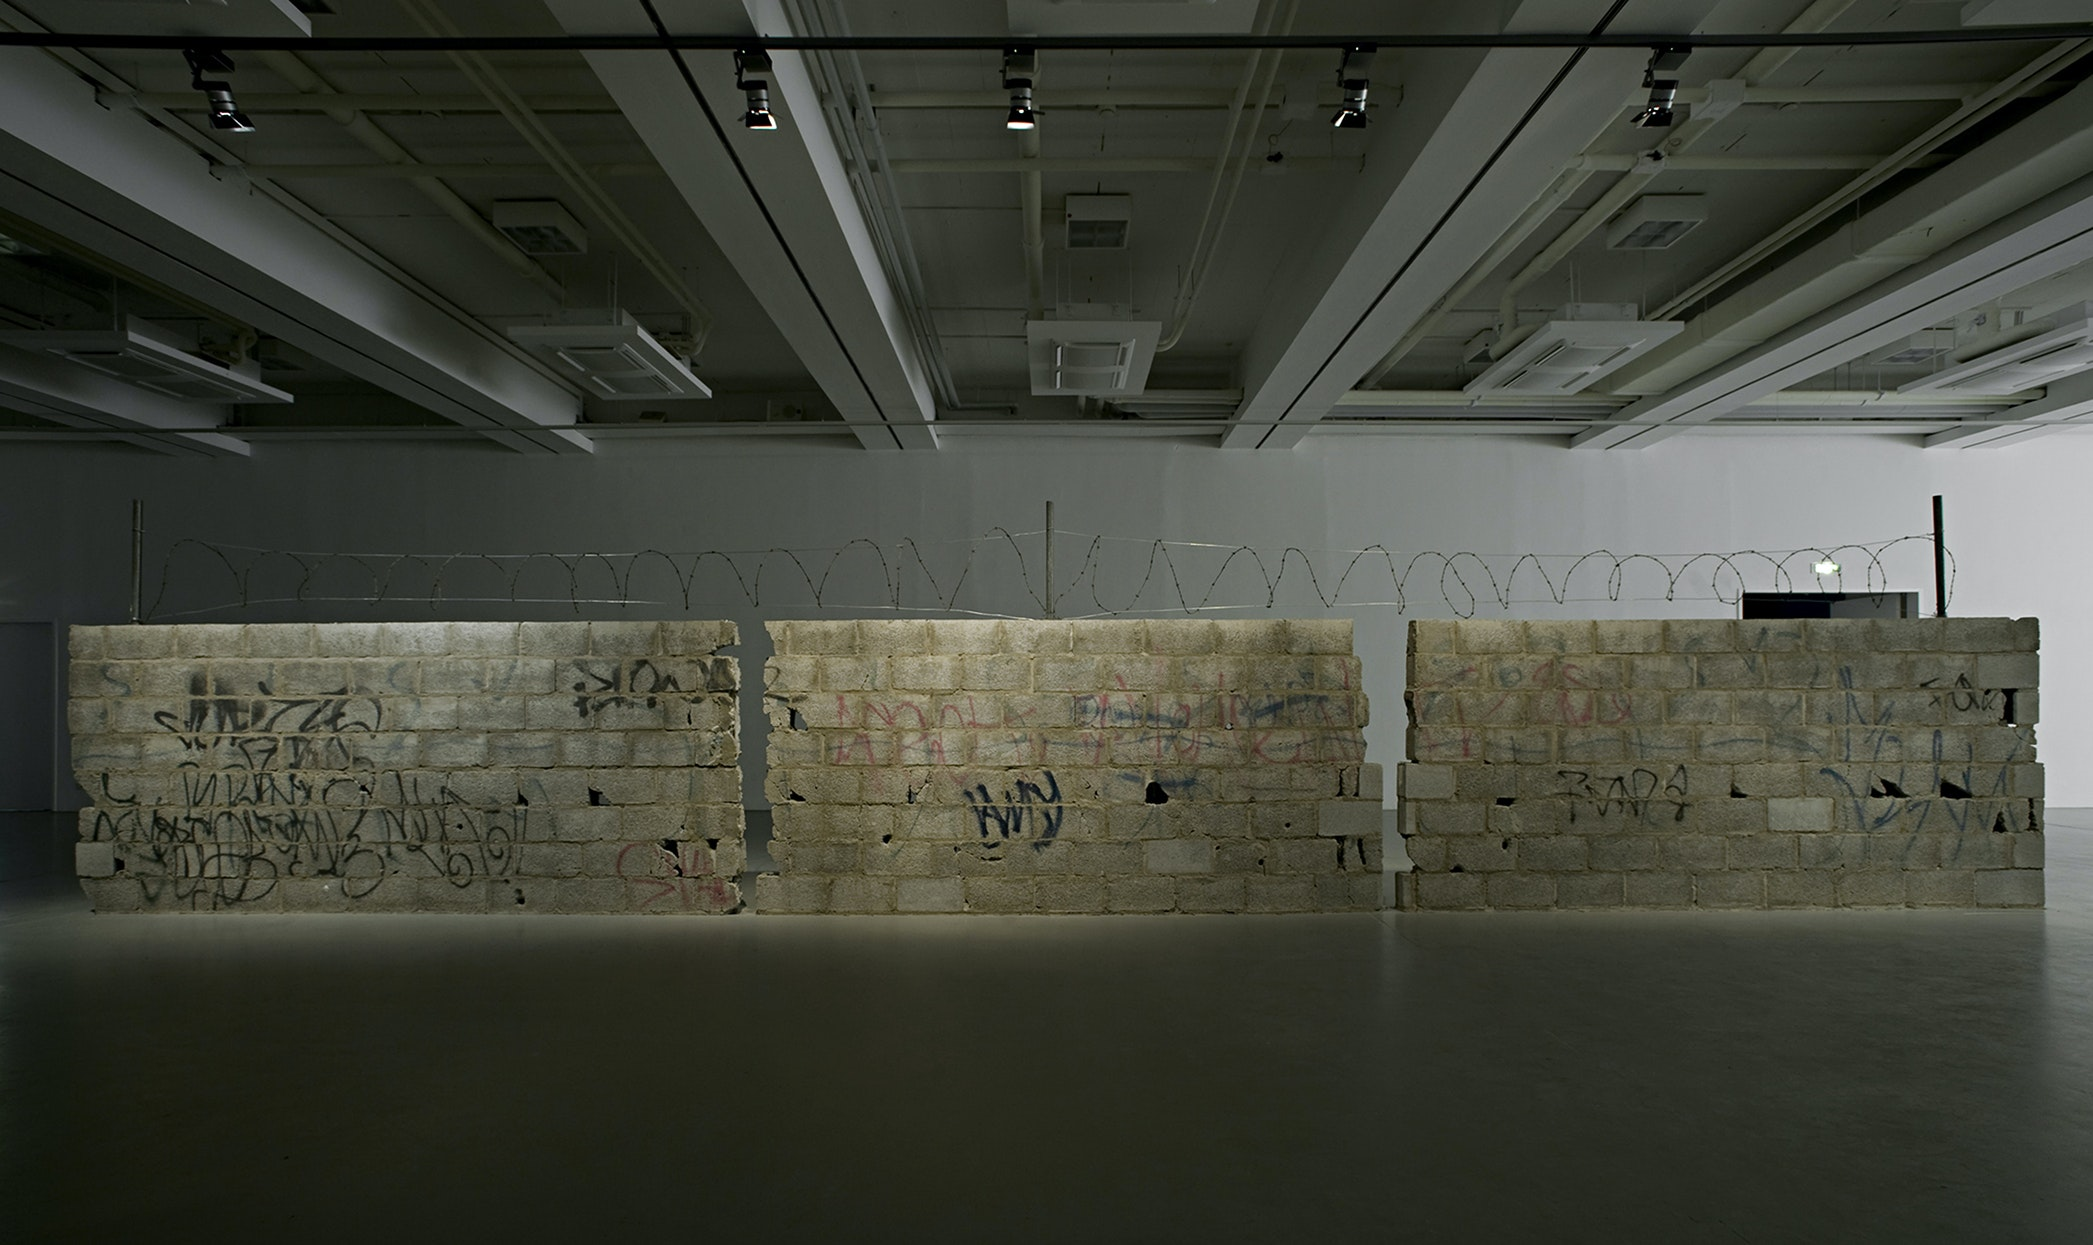 """Teresa Margolies's """"Muro Ciudad Juarez"""" is one of the pieces selected by curator Ralph Rugoff for the Biennale this year."""